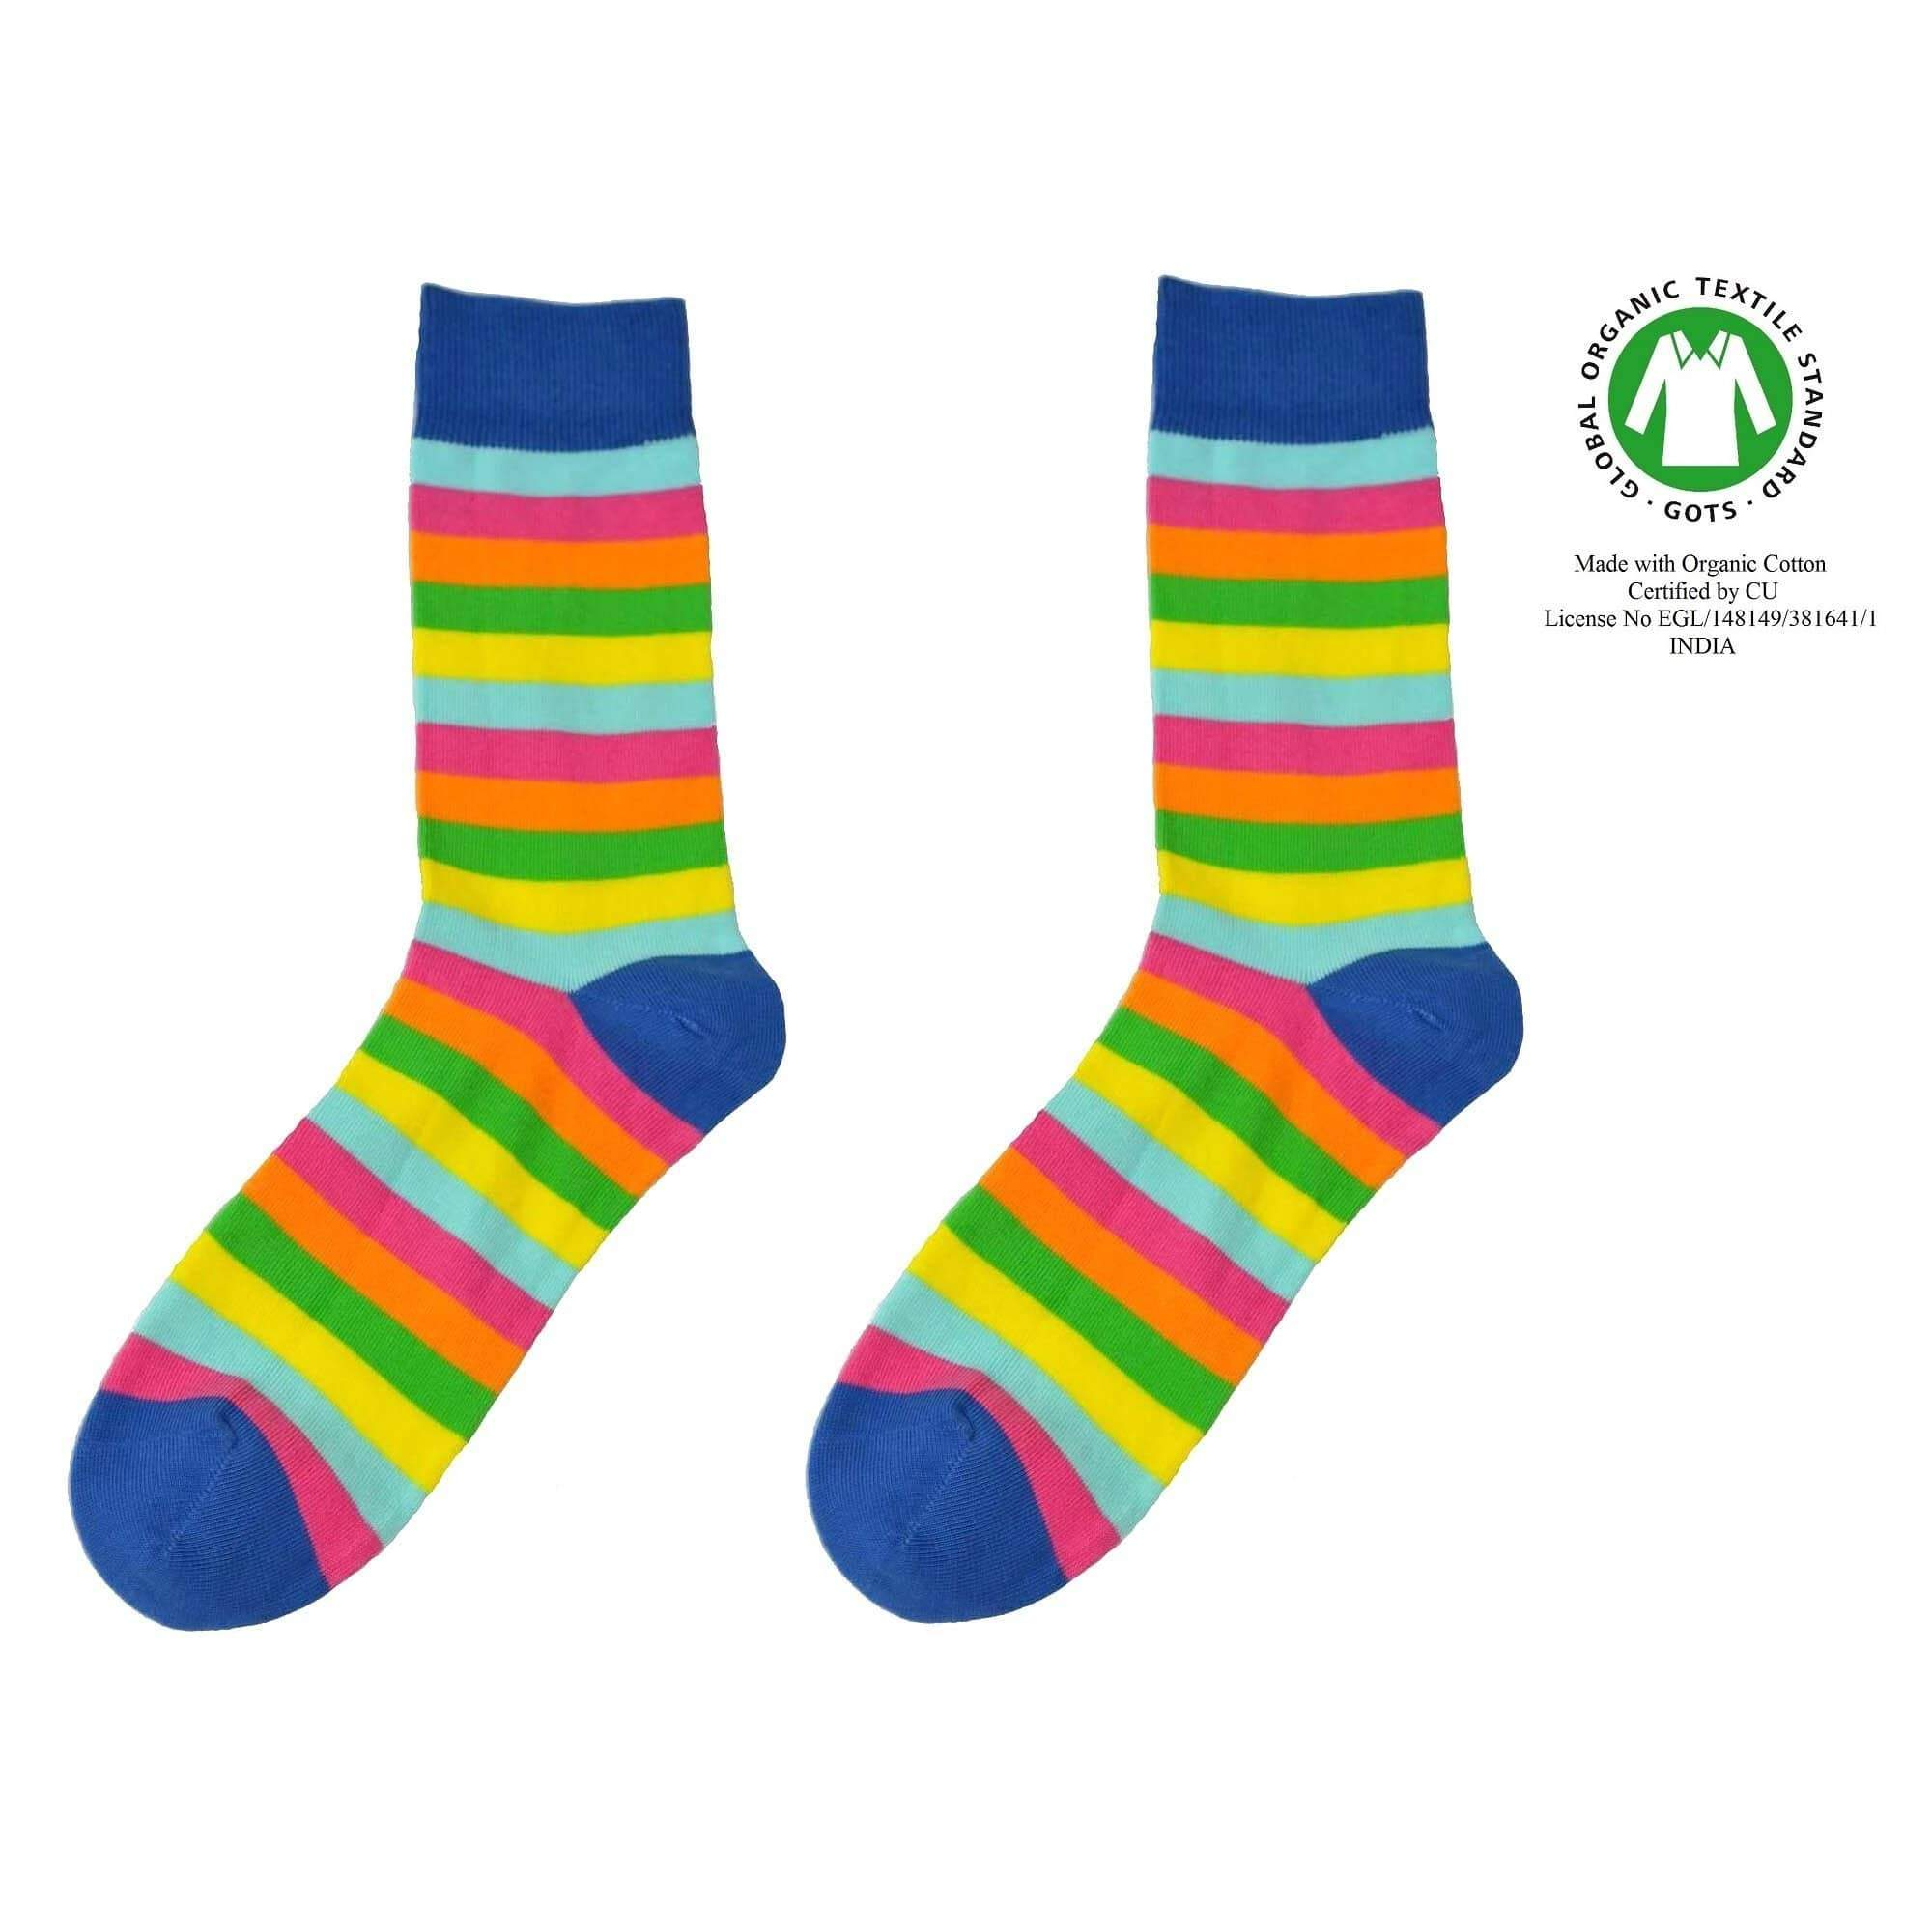 Organic Socks of Sweden sock Lund Socks. Organic Cotton. sustainable fashion ethical fashion